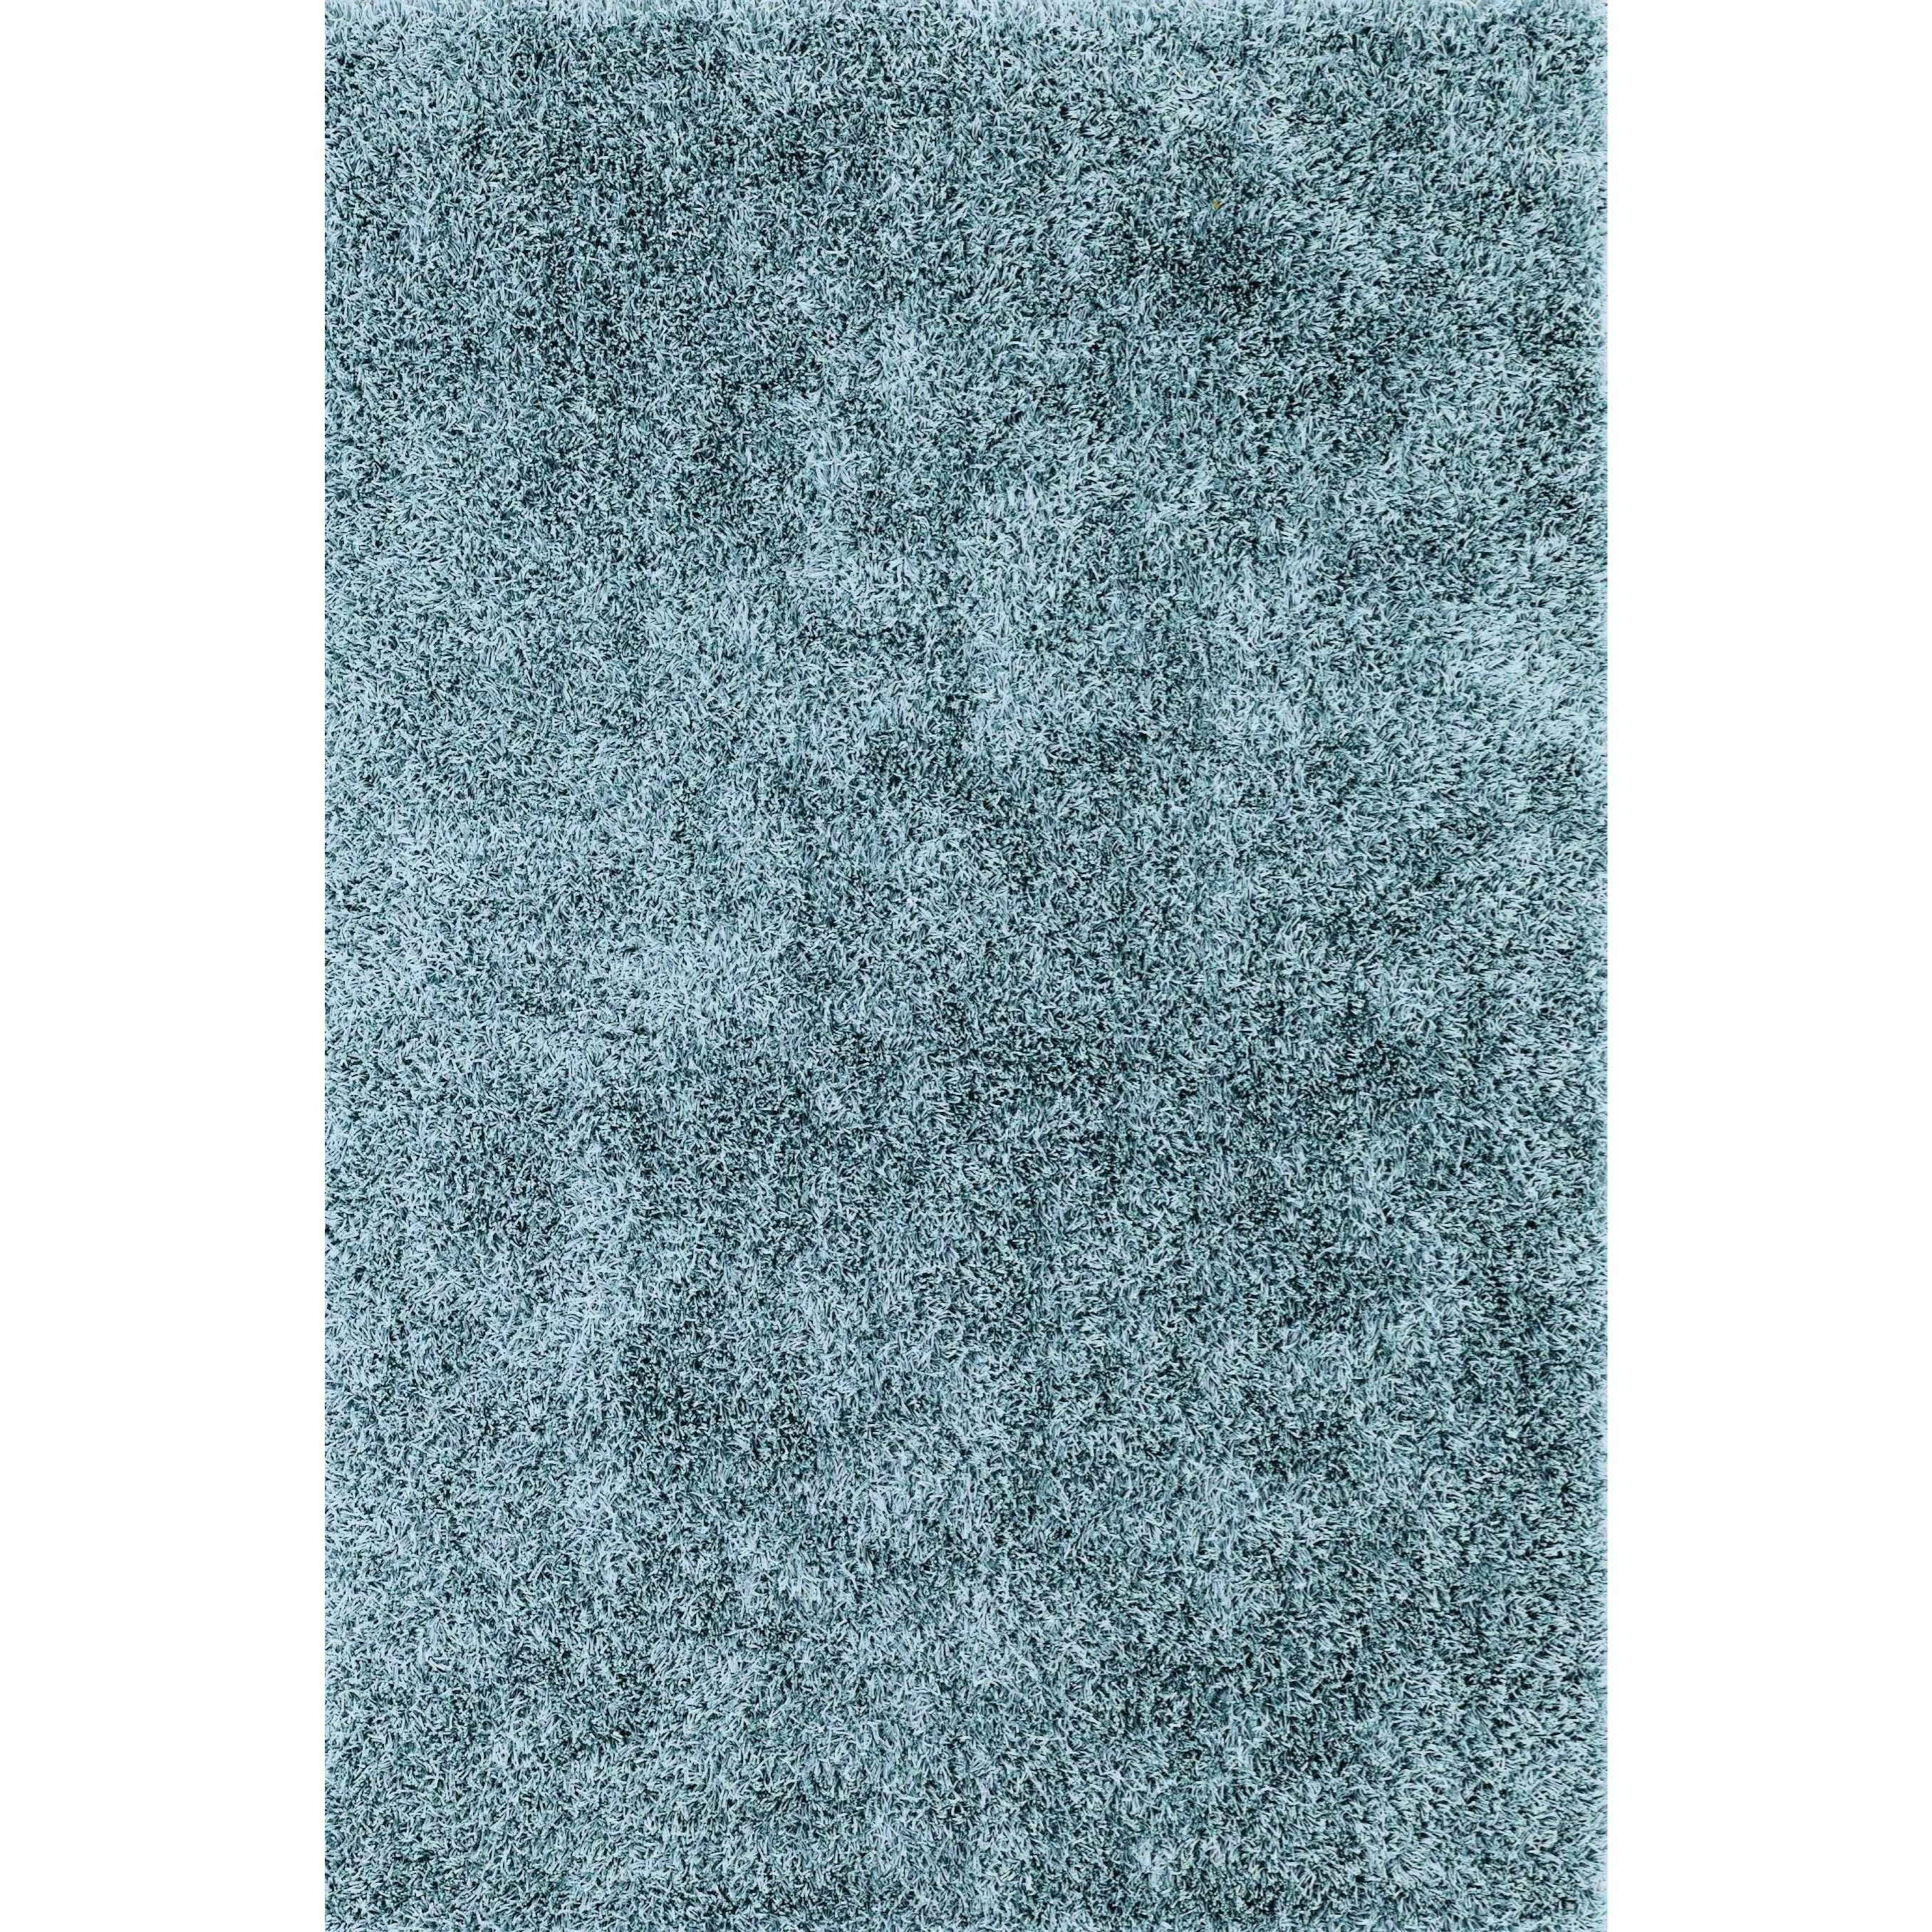 """Illusions Sky Blue 3'6""""X5'6"""" Rug by Dalyn at Fashion Furniture"""